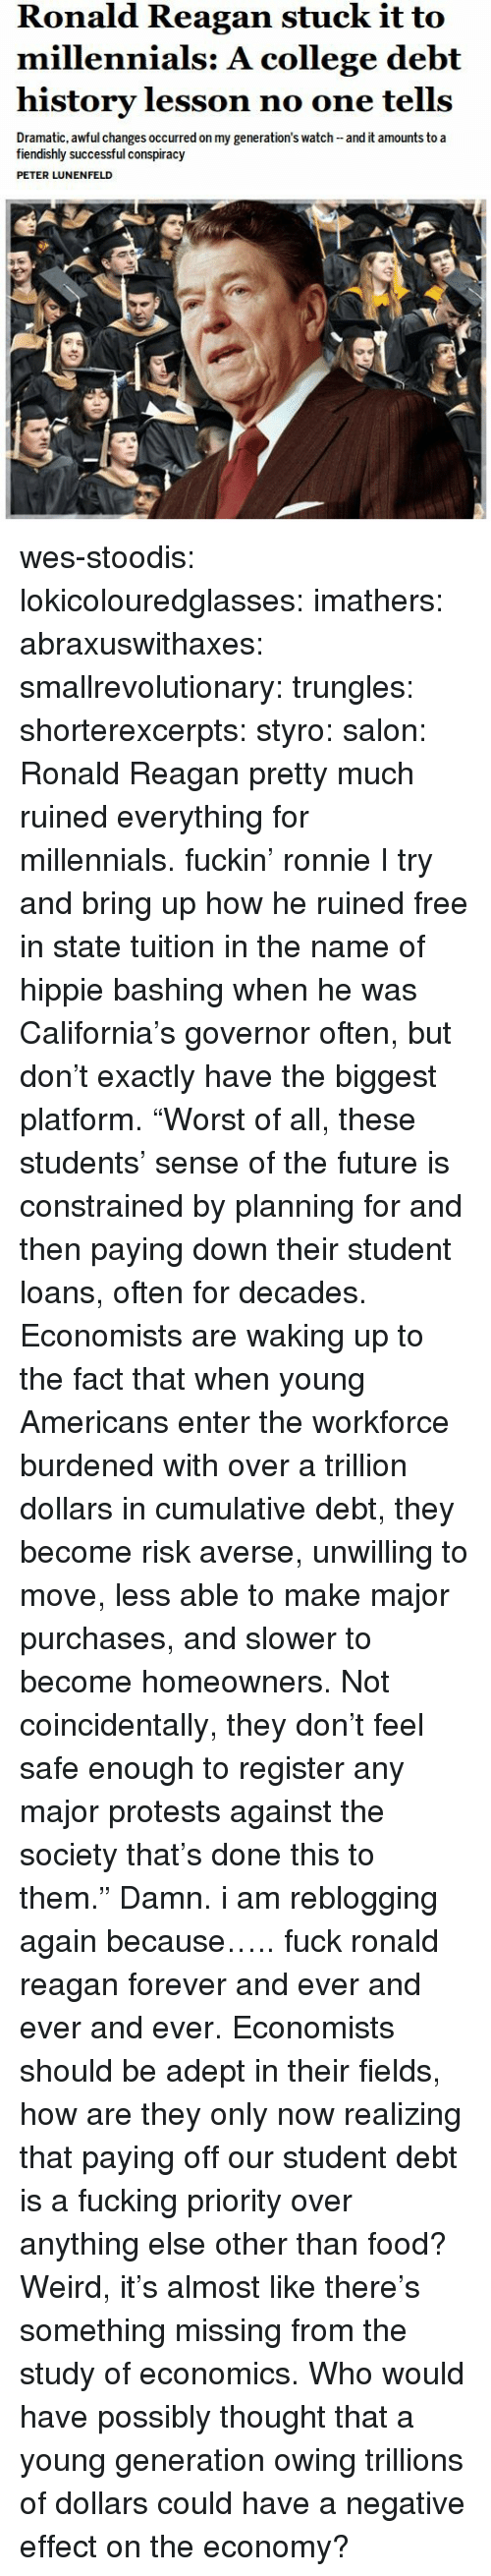 "College, Food, and Fucking: Ronald Reagan stuck it to  millennials: A college debt  history lesson no one tells  Dramatic, awful changes occurred on my generation's watch and it amounts to a  fiendishly successful conspiracy  PETER LUNENFELD wes-stoodis:  lokicolouredglasses:  imathers:  abraxuswithaxes:  smallrevolutionary:  trungles:  shorterexcerpts:  styro:  salon:  Ronald Reagan pretty much ruined everything for millennials.   fuckin' ronnie  I try and bring up how he ruined free in state tuition in the name of hippie bashing when he was California's governor often, but don't exactly have the biggest platform.  ""Worst of all, these students' sense of the future is constrained by planning for and then paying down their student loans, often for decades. Economists are waking up to the fact that when young Americans enter the workforce burdened with over a trillion dollars in cumulative debt, they become risk averse, unwilling to move, less able to make major purchases, and slower to become homeowners. Not coincidentally, they don't feel safe enough to register any major protests against the society that's done this to them."" Damn.  i am reblogging again because….. fuck ronald reagan forever and ever and ever and ever.   Economists should be adept in their fields, how are they only now realizing that paying off our student debt is a fucking priority over anything else other than food?  Weird, it's almost like there's something missing from the study of economics.  Who would have possibly thought that a young generation owing trillions of dollars could have a negative effect on the economy?"